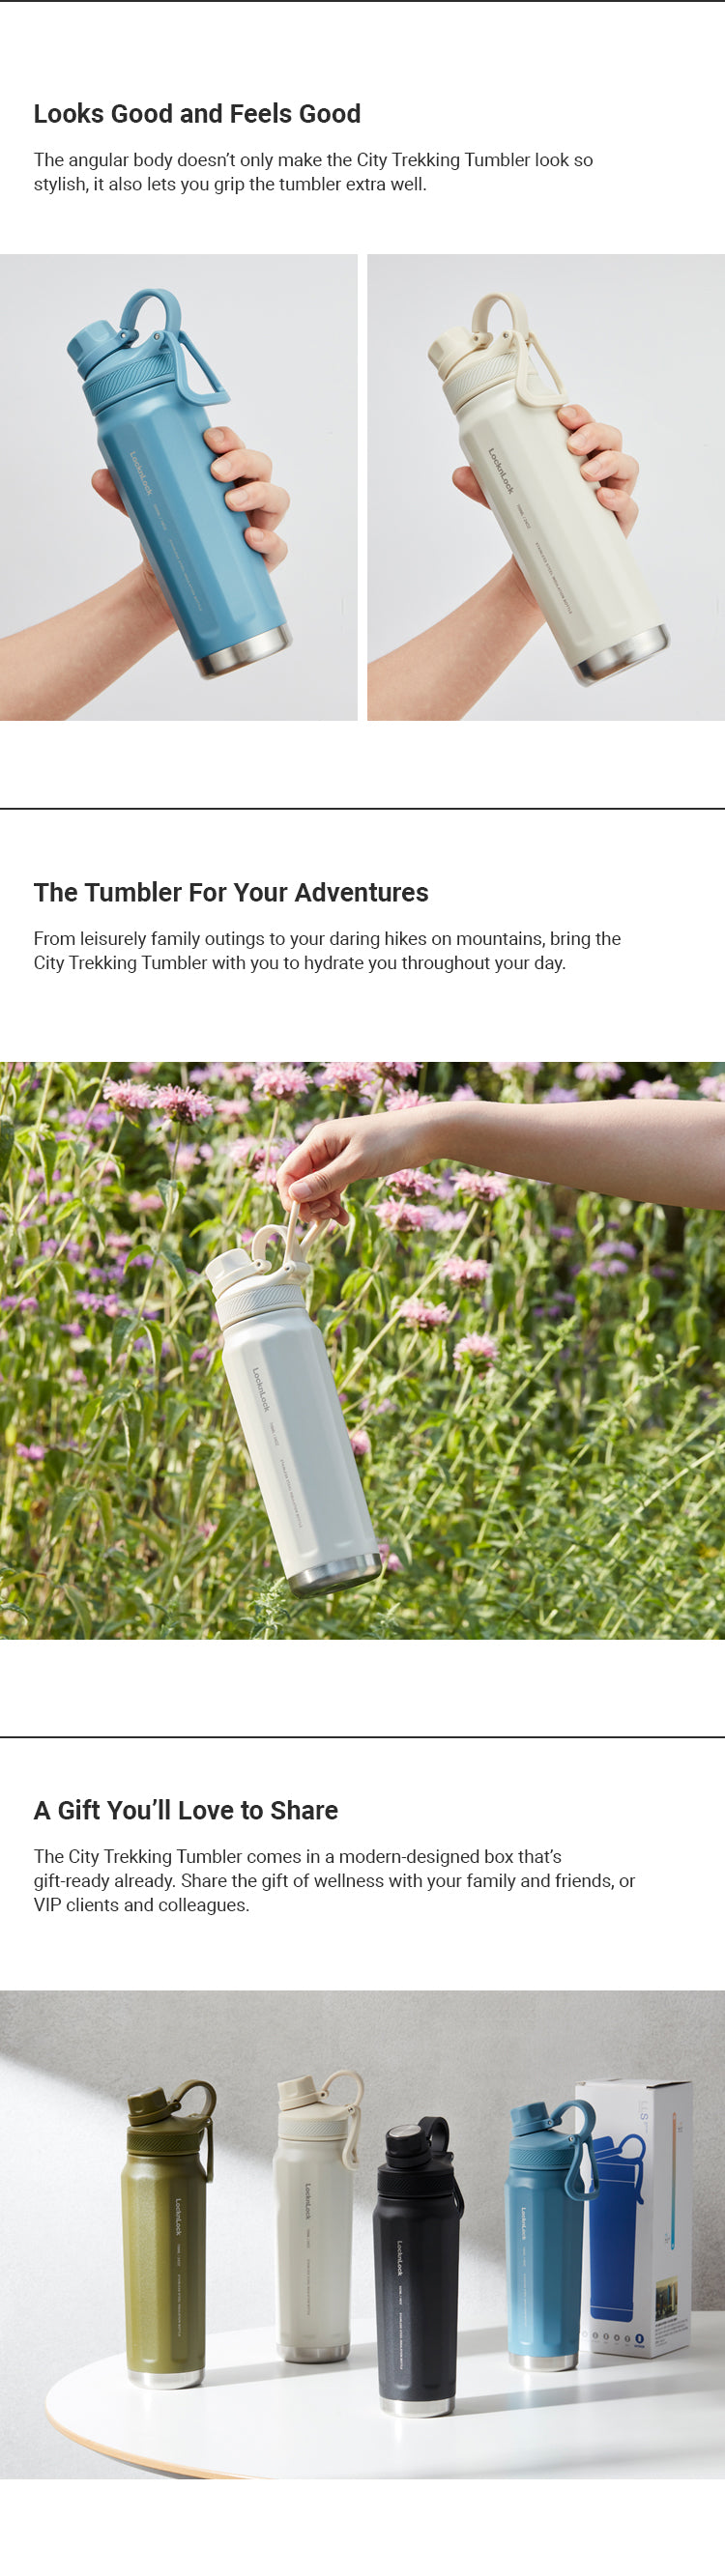 LocknLock City Trekking Tumbler 709 ml | Double Wall, Spout-Type Outdoor Tumbler with Handle